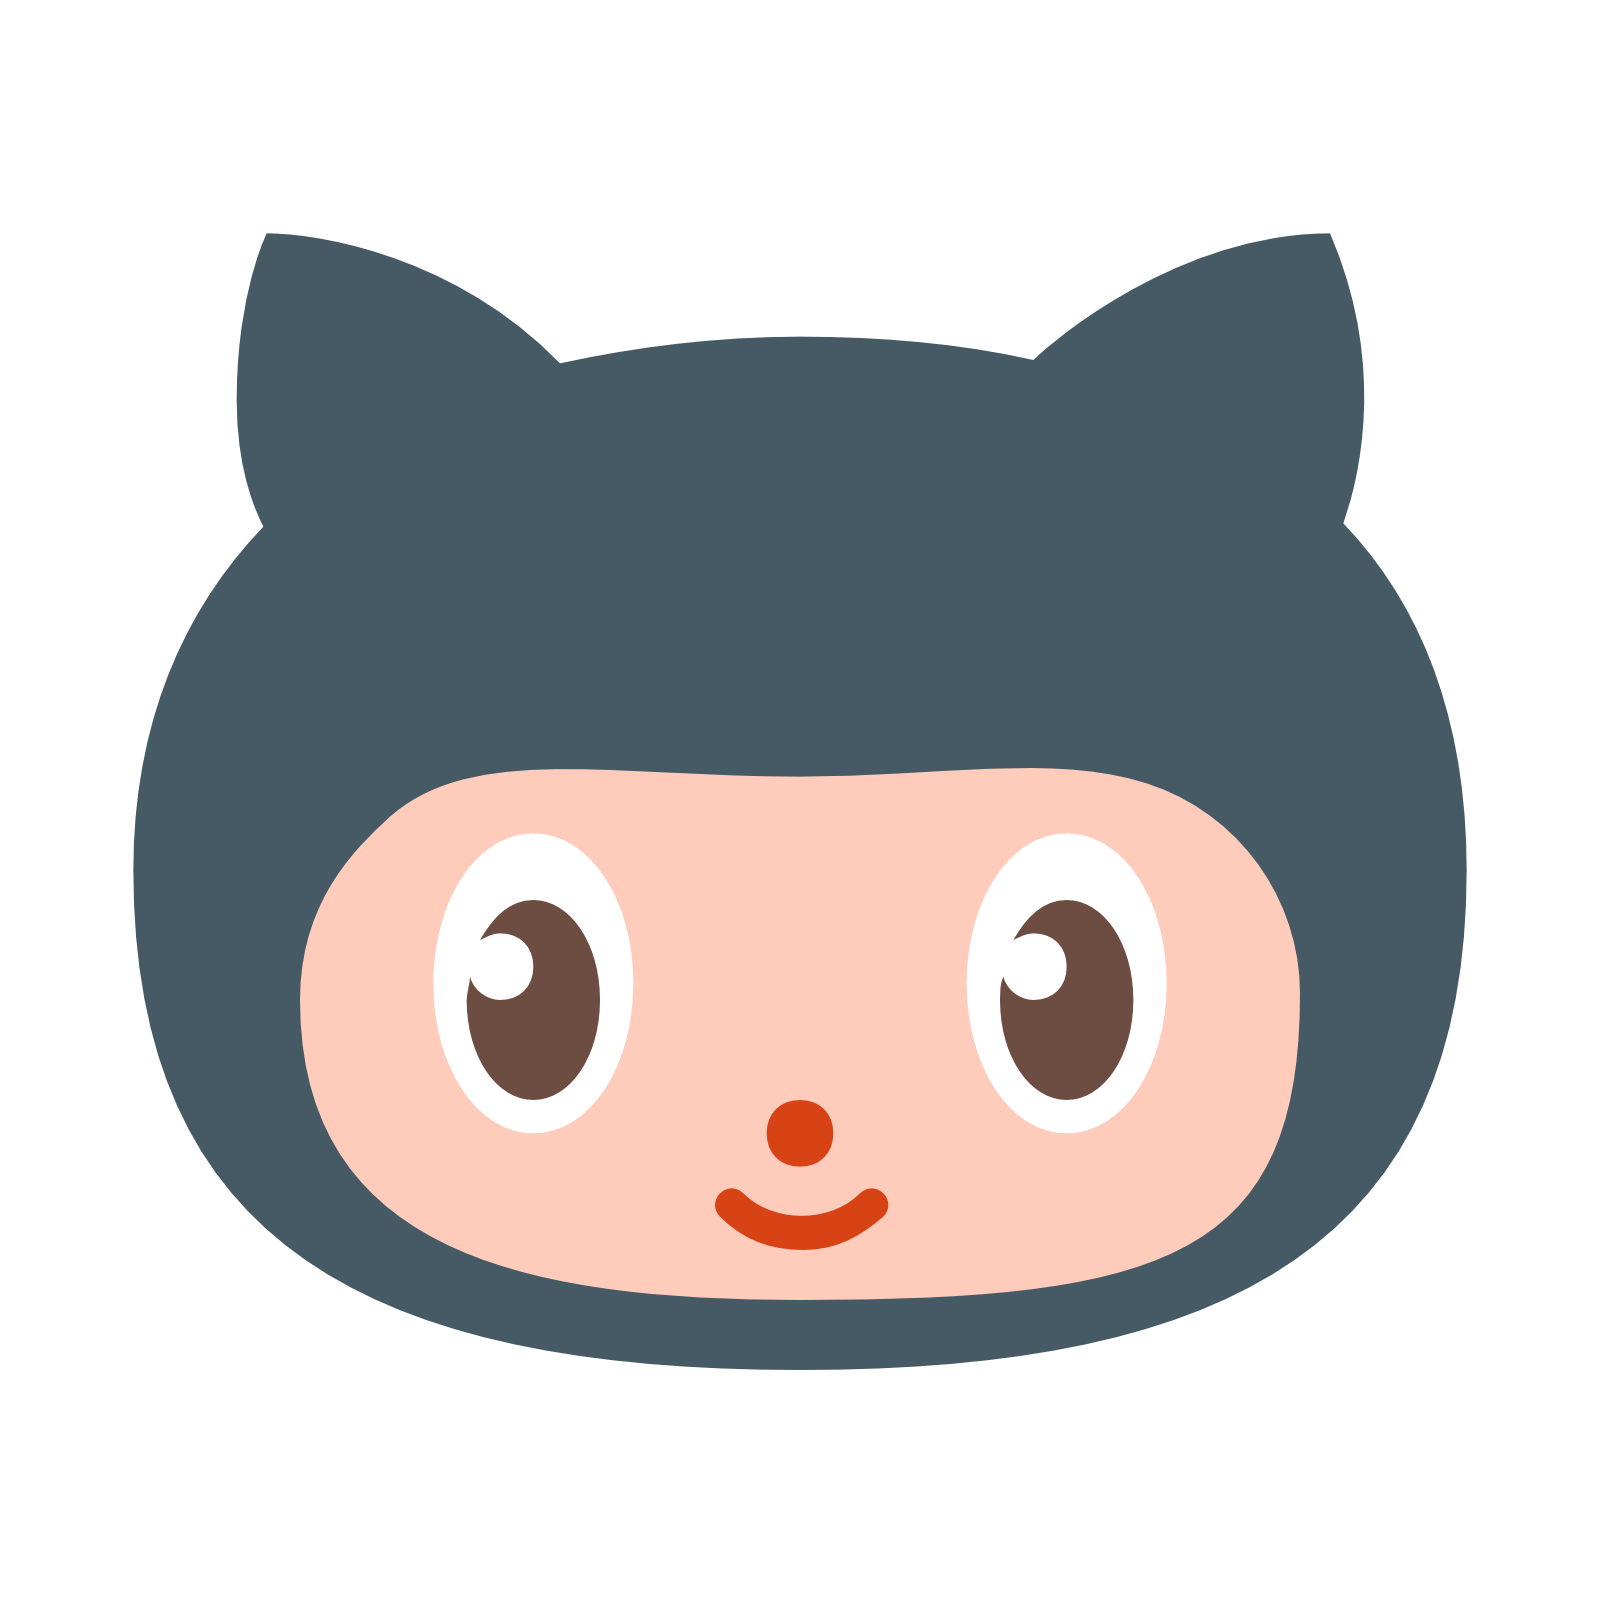 PNG 50 px - Github Octocat Logo PNG - Github Octocat Vector PNG